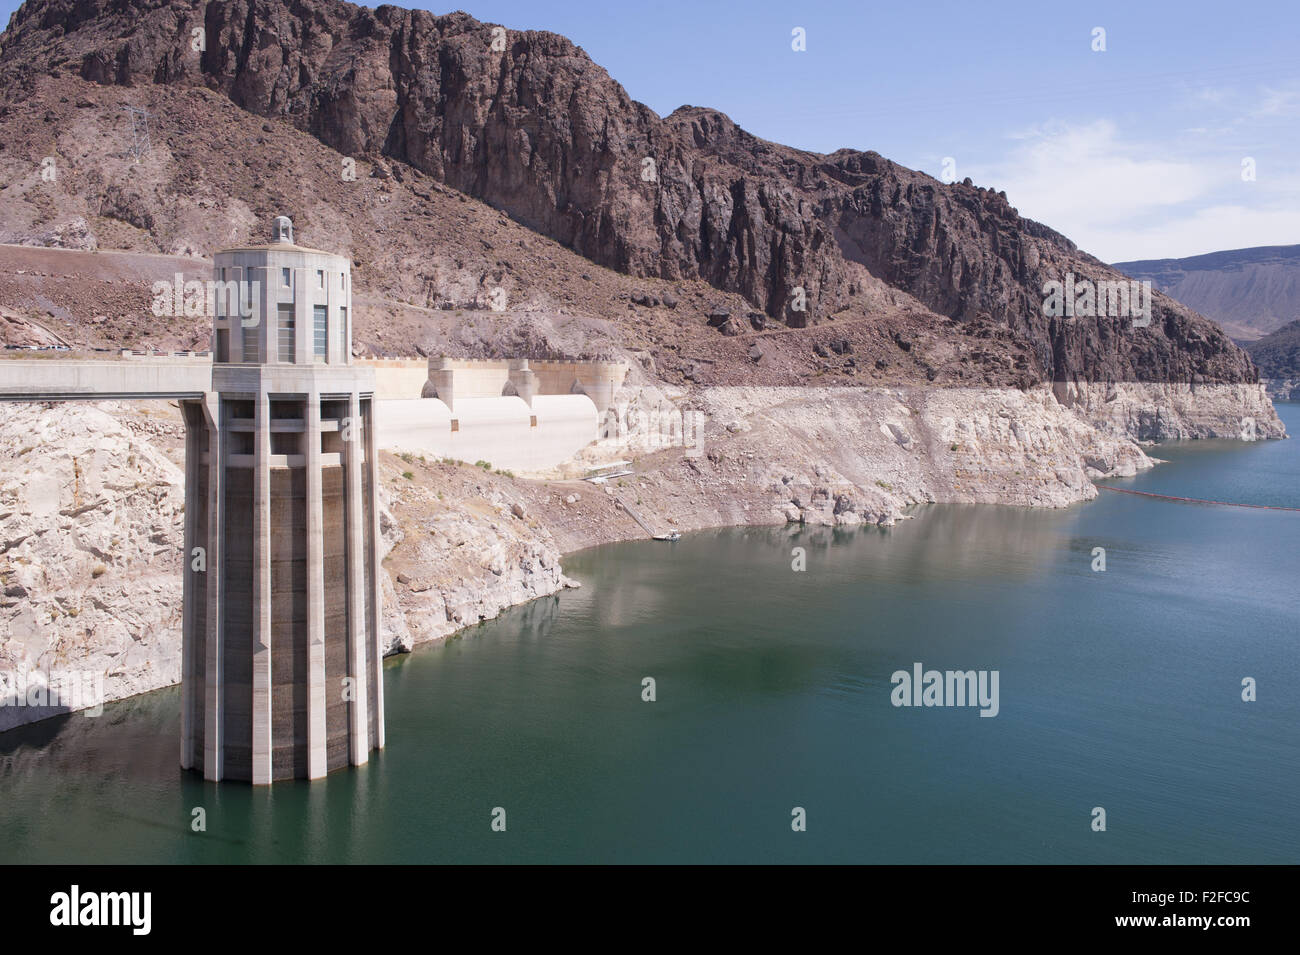 Lake Mead has dropped in water level at Hoover Dam over the years of drought in the western United States. Stock Photo